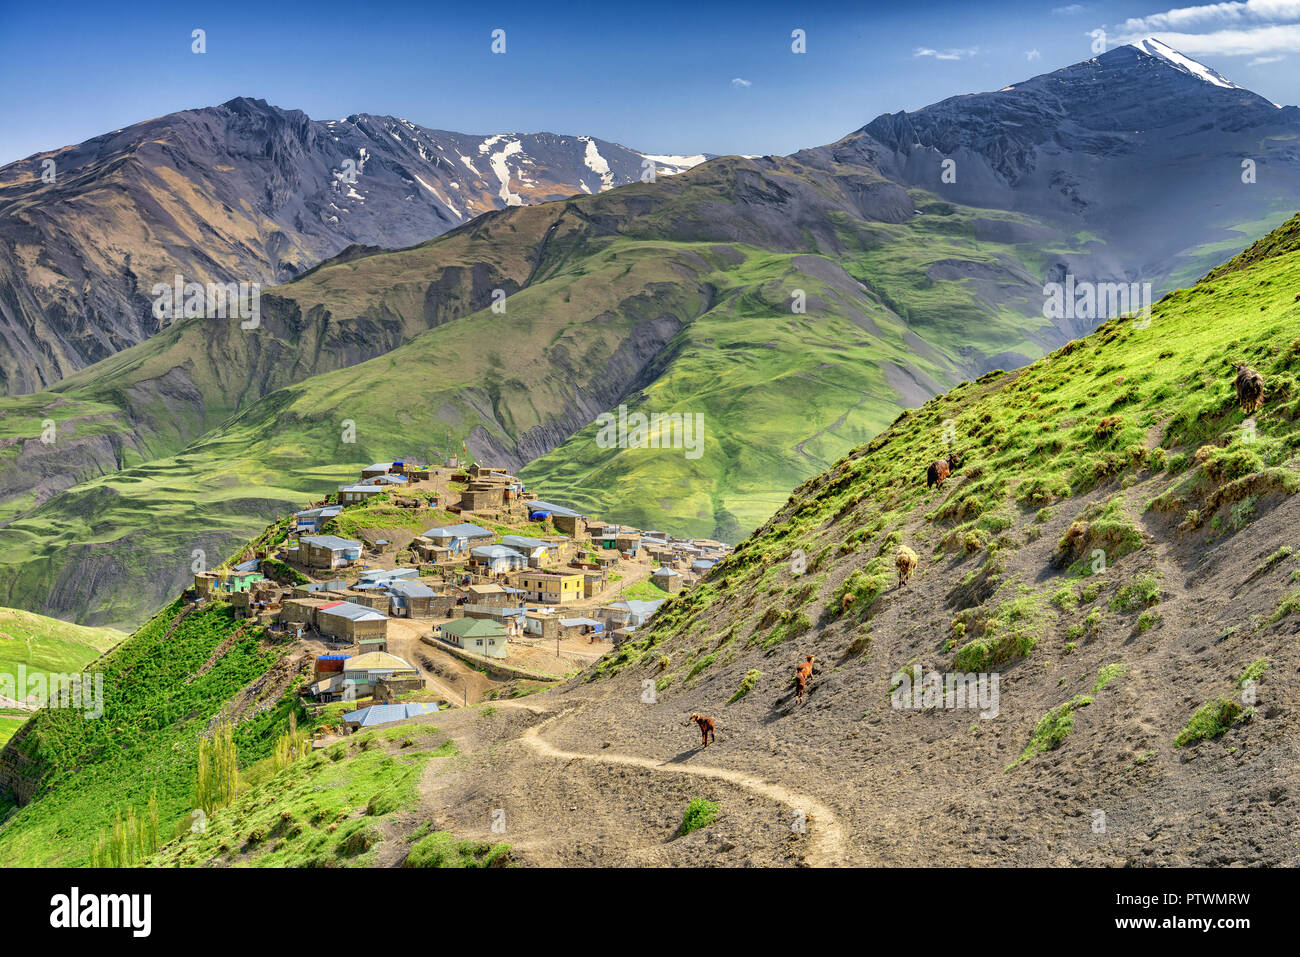 Azerbaijan landscape of nature, Beautiful mountains and hills in the north of Azerbaijan near Quba in the village Khinaluq - Stock Image